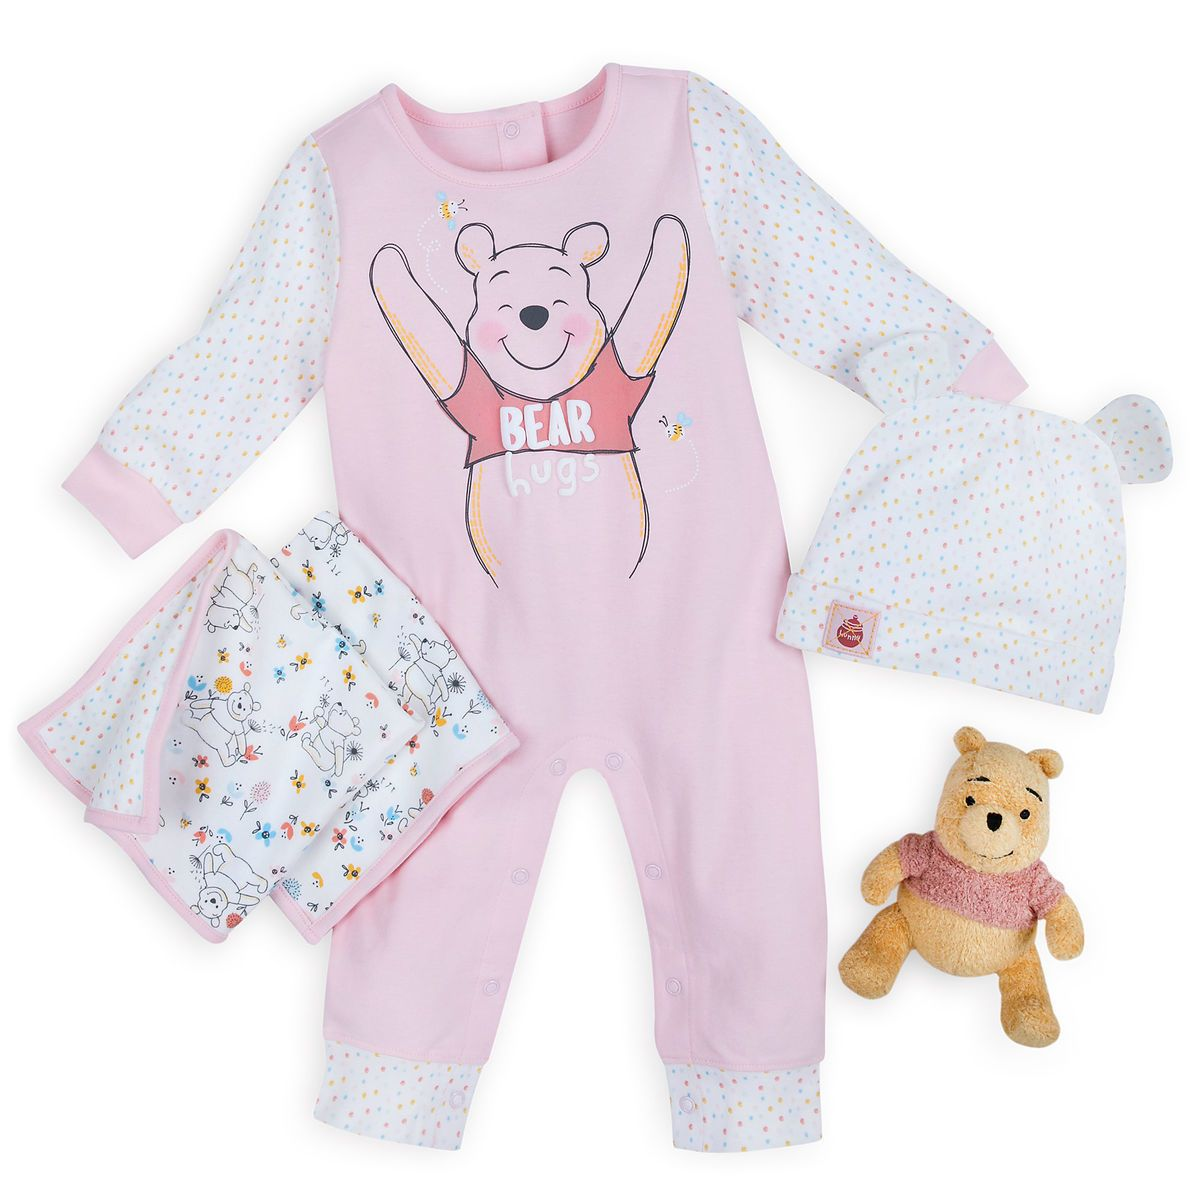 6fe84fe1f6a5 Product Image of Winnie the Pooh Gift Set for Baby - Pink   1